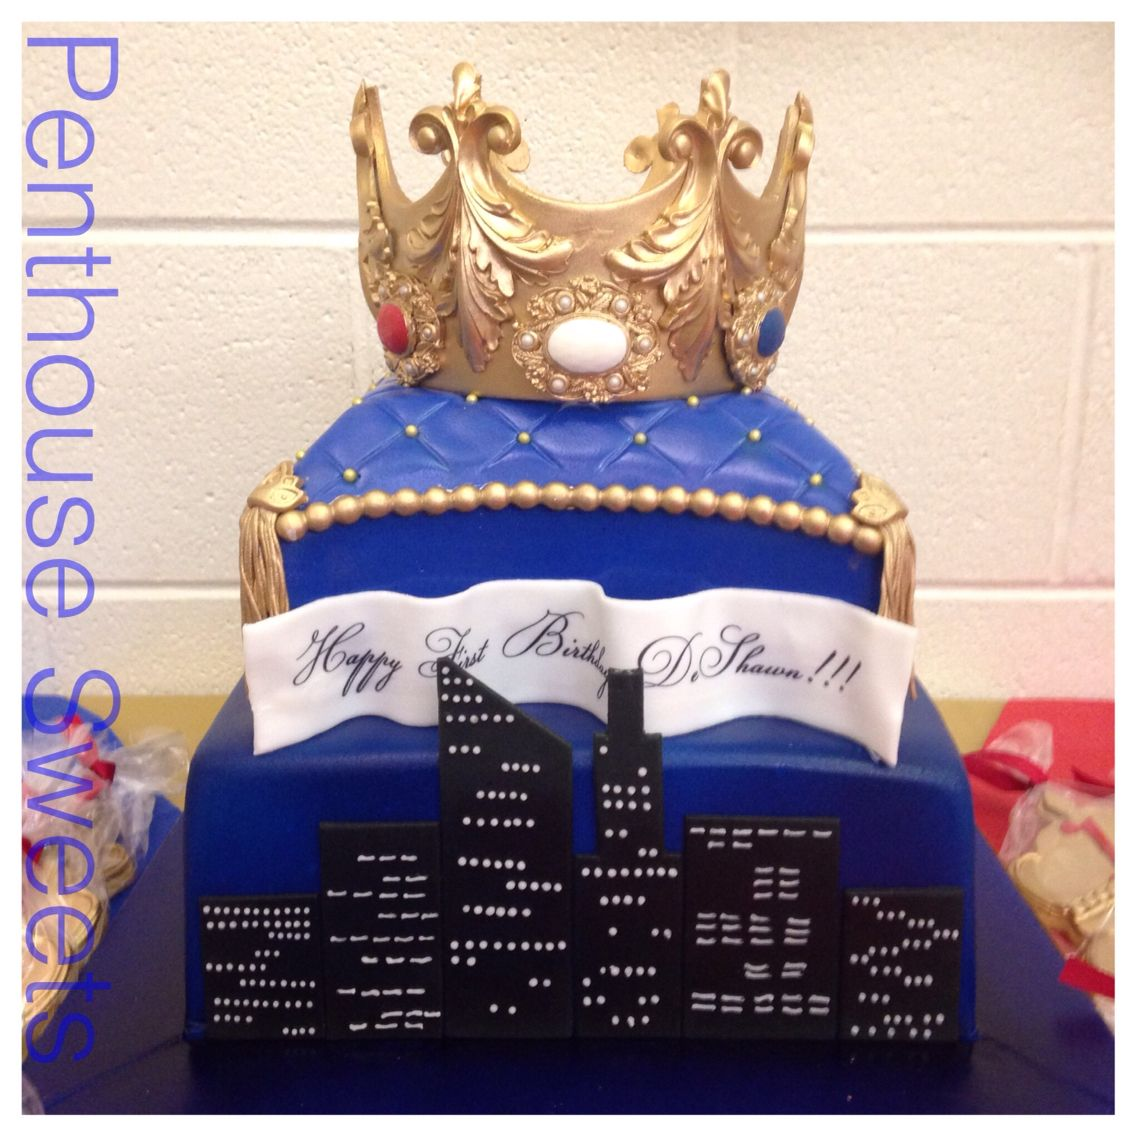 Birthday cake for a prince of the city